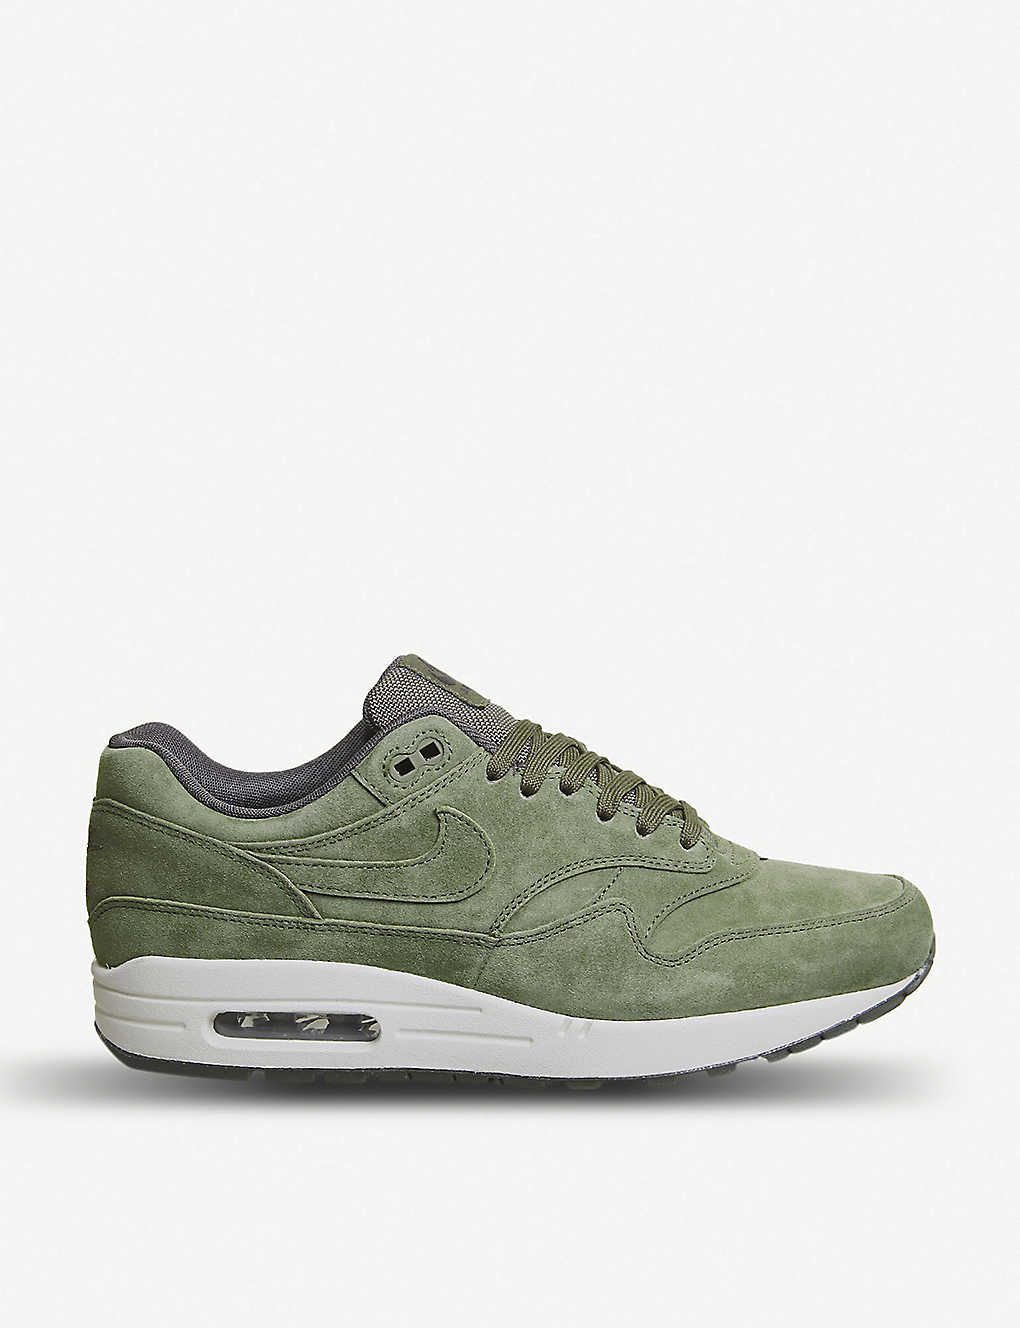 reputable site b732f 2dad7 Air Max 1 suede trainers - Olive sequoia light ...